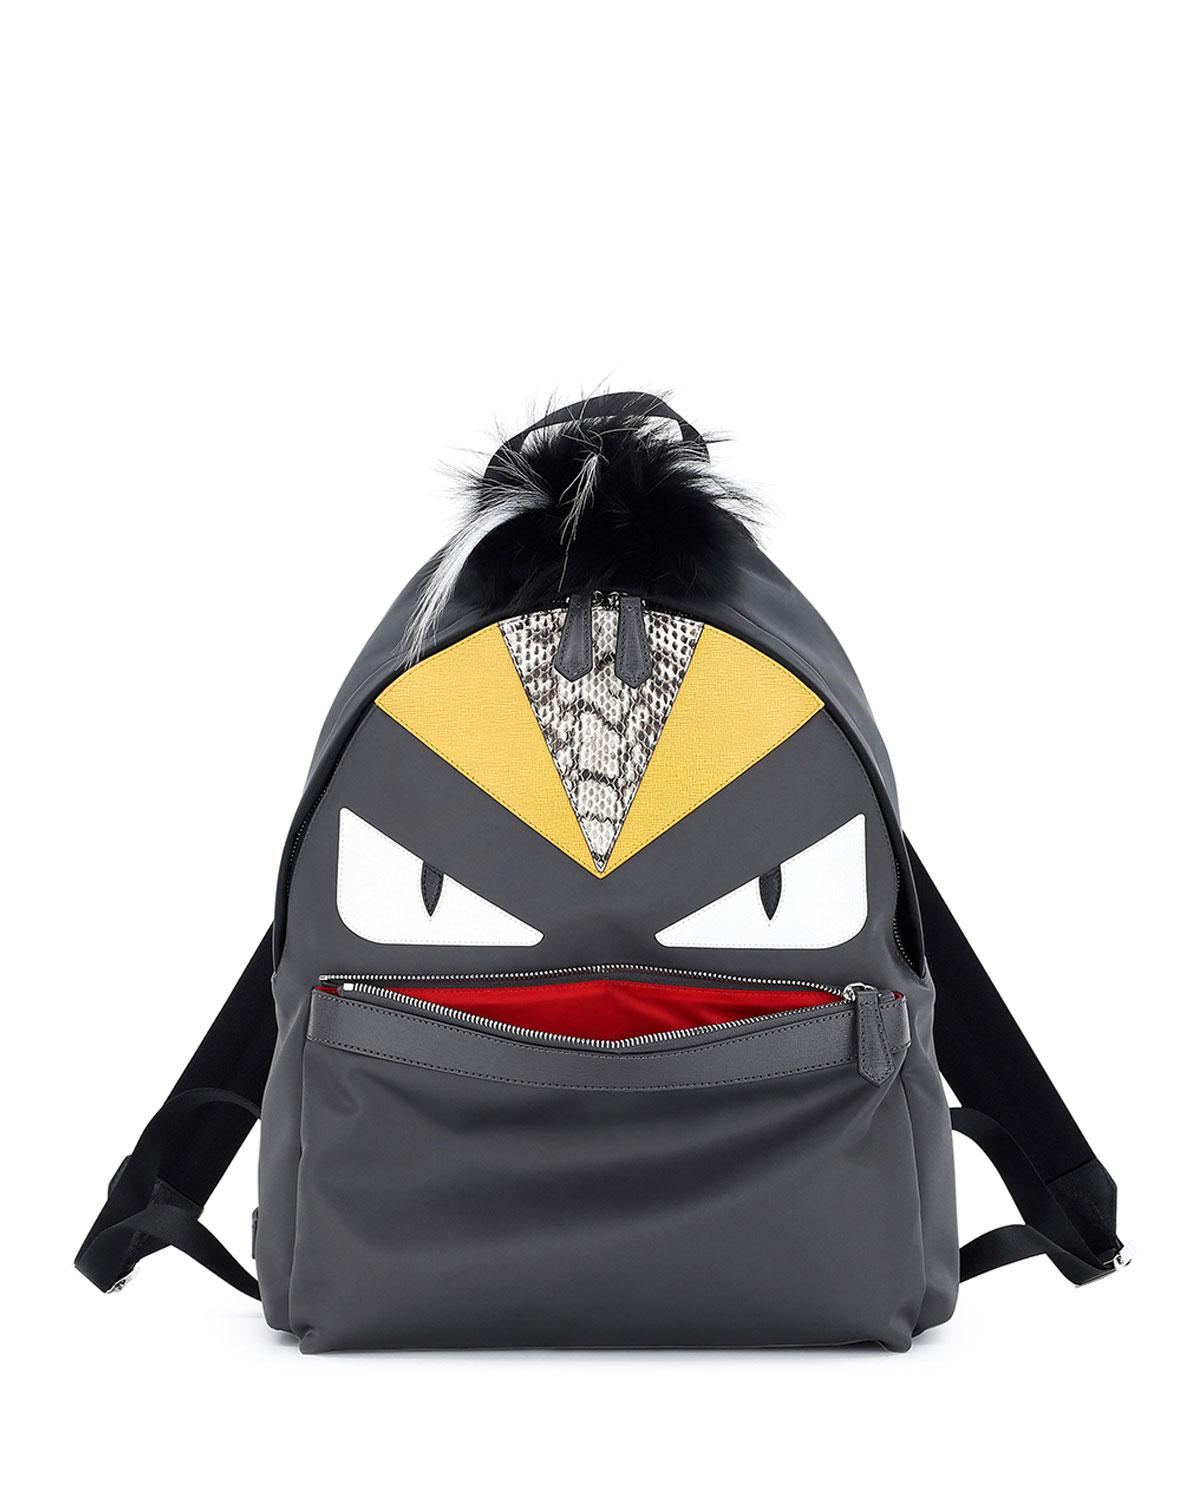 Lyst - Fendi Monster Backpack W watersnake   Fur Details in Gray for Men fc6a364099542